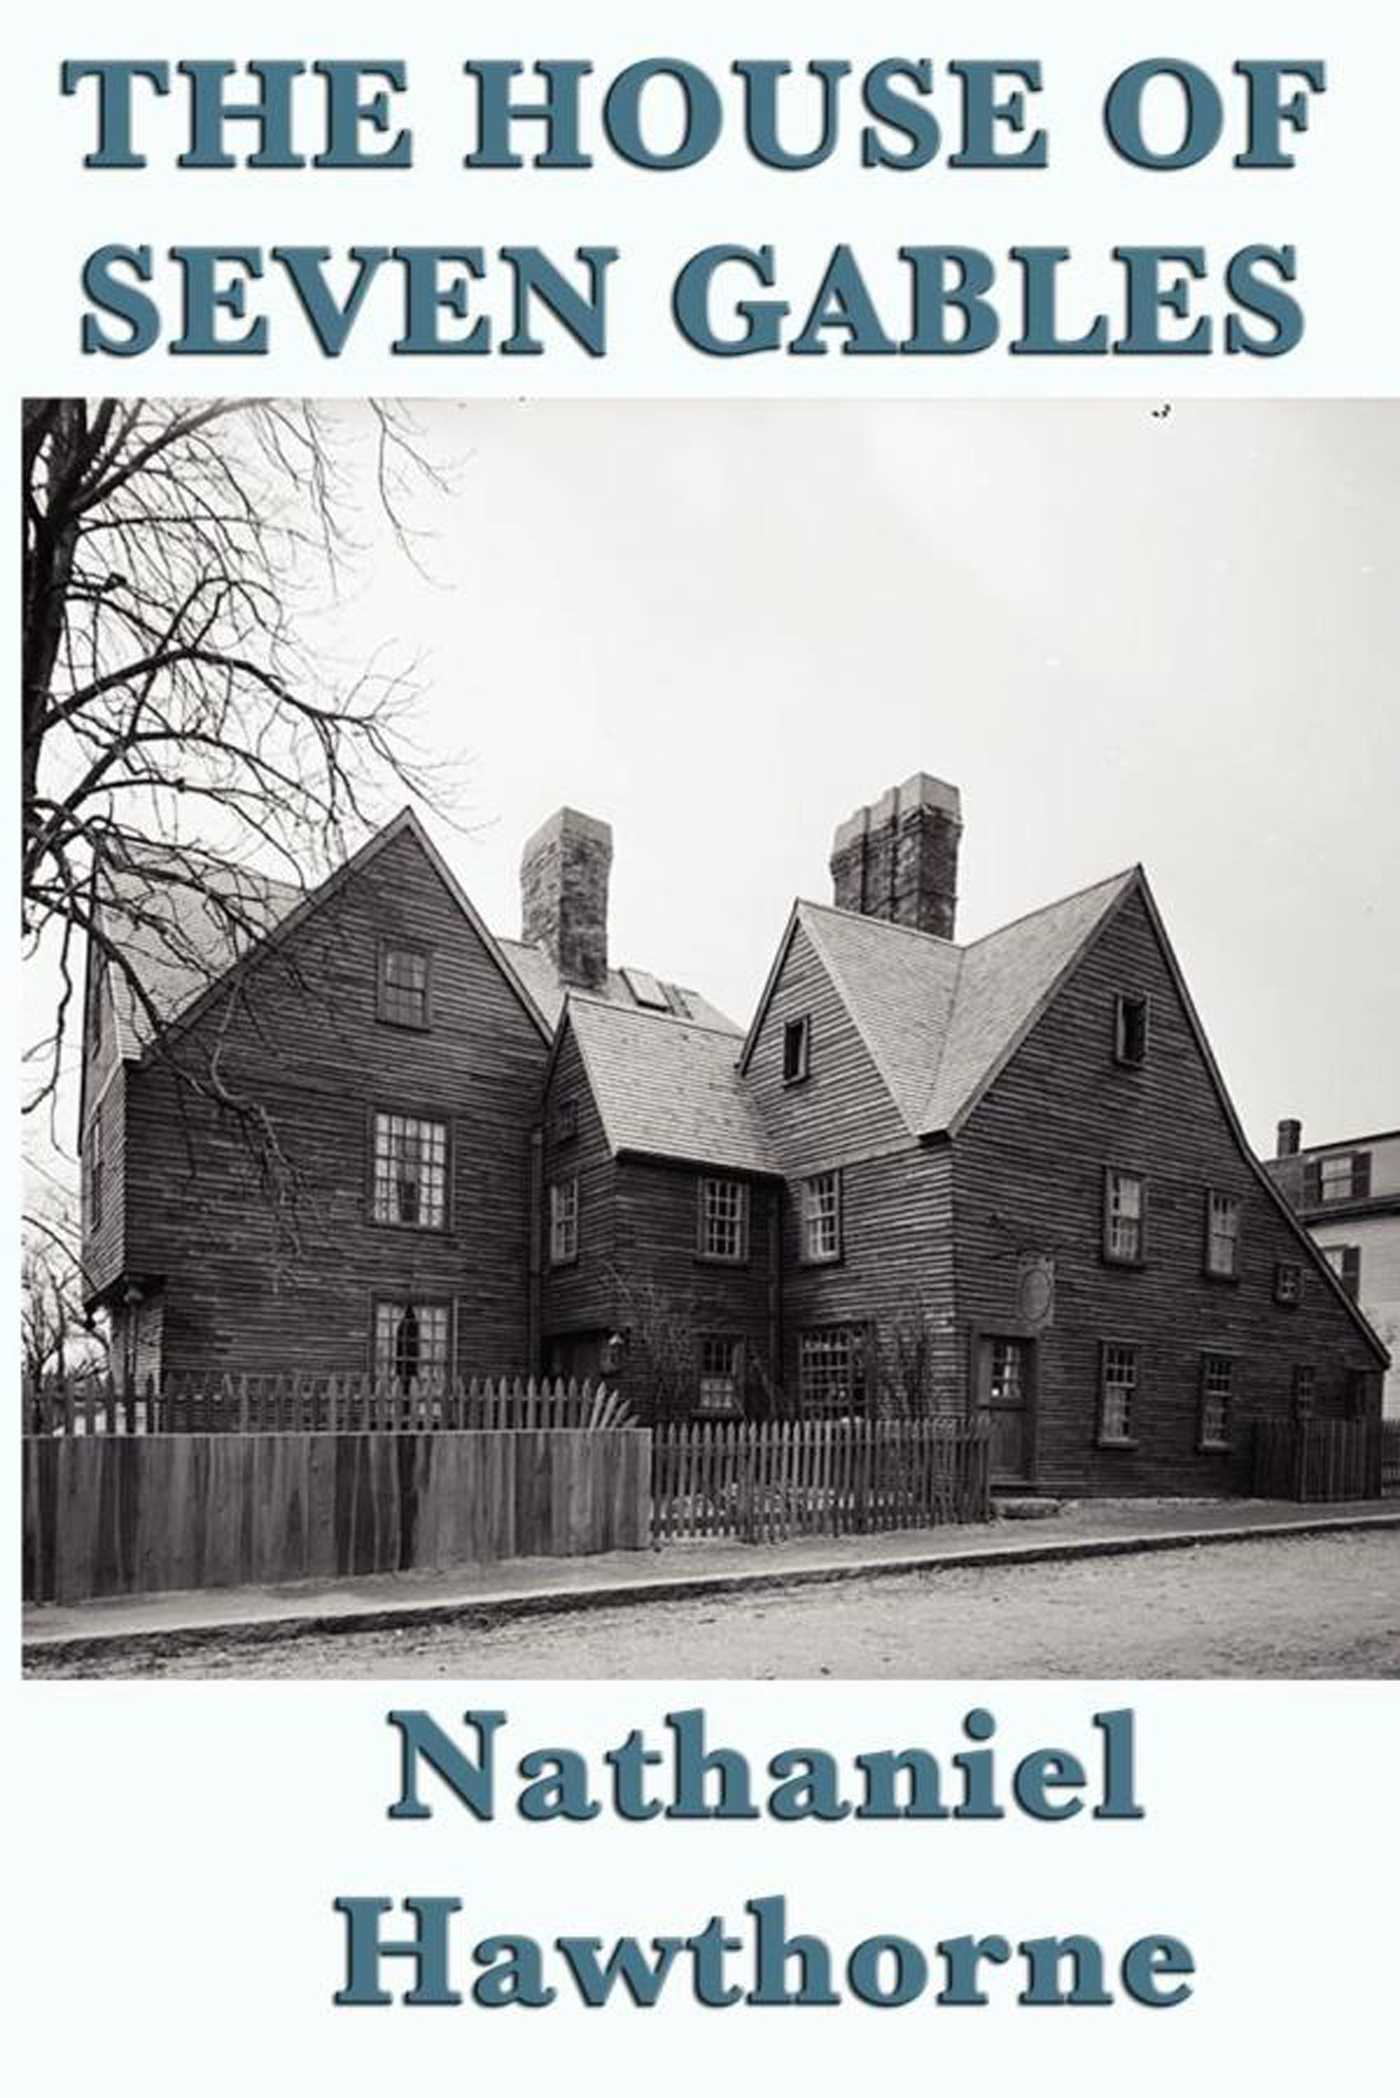 an analysis of nathaniel hawthornes story the house of seven gables